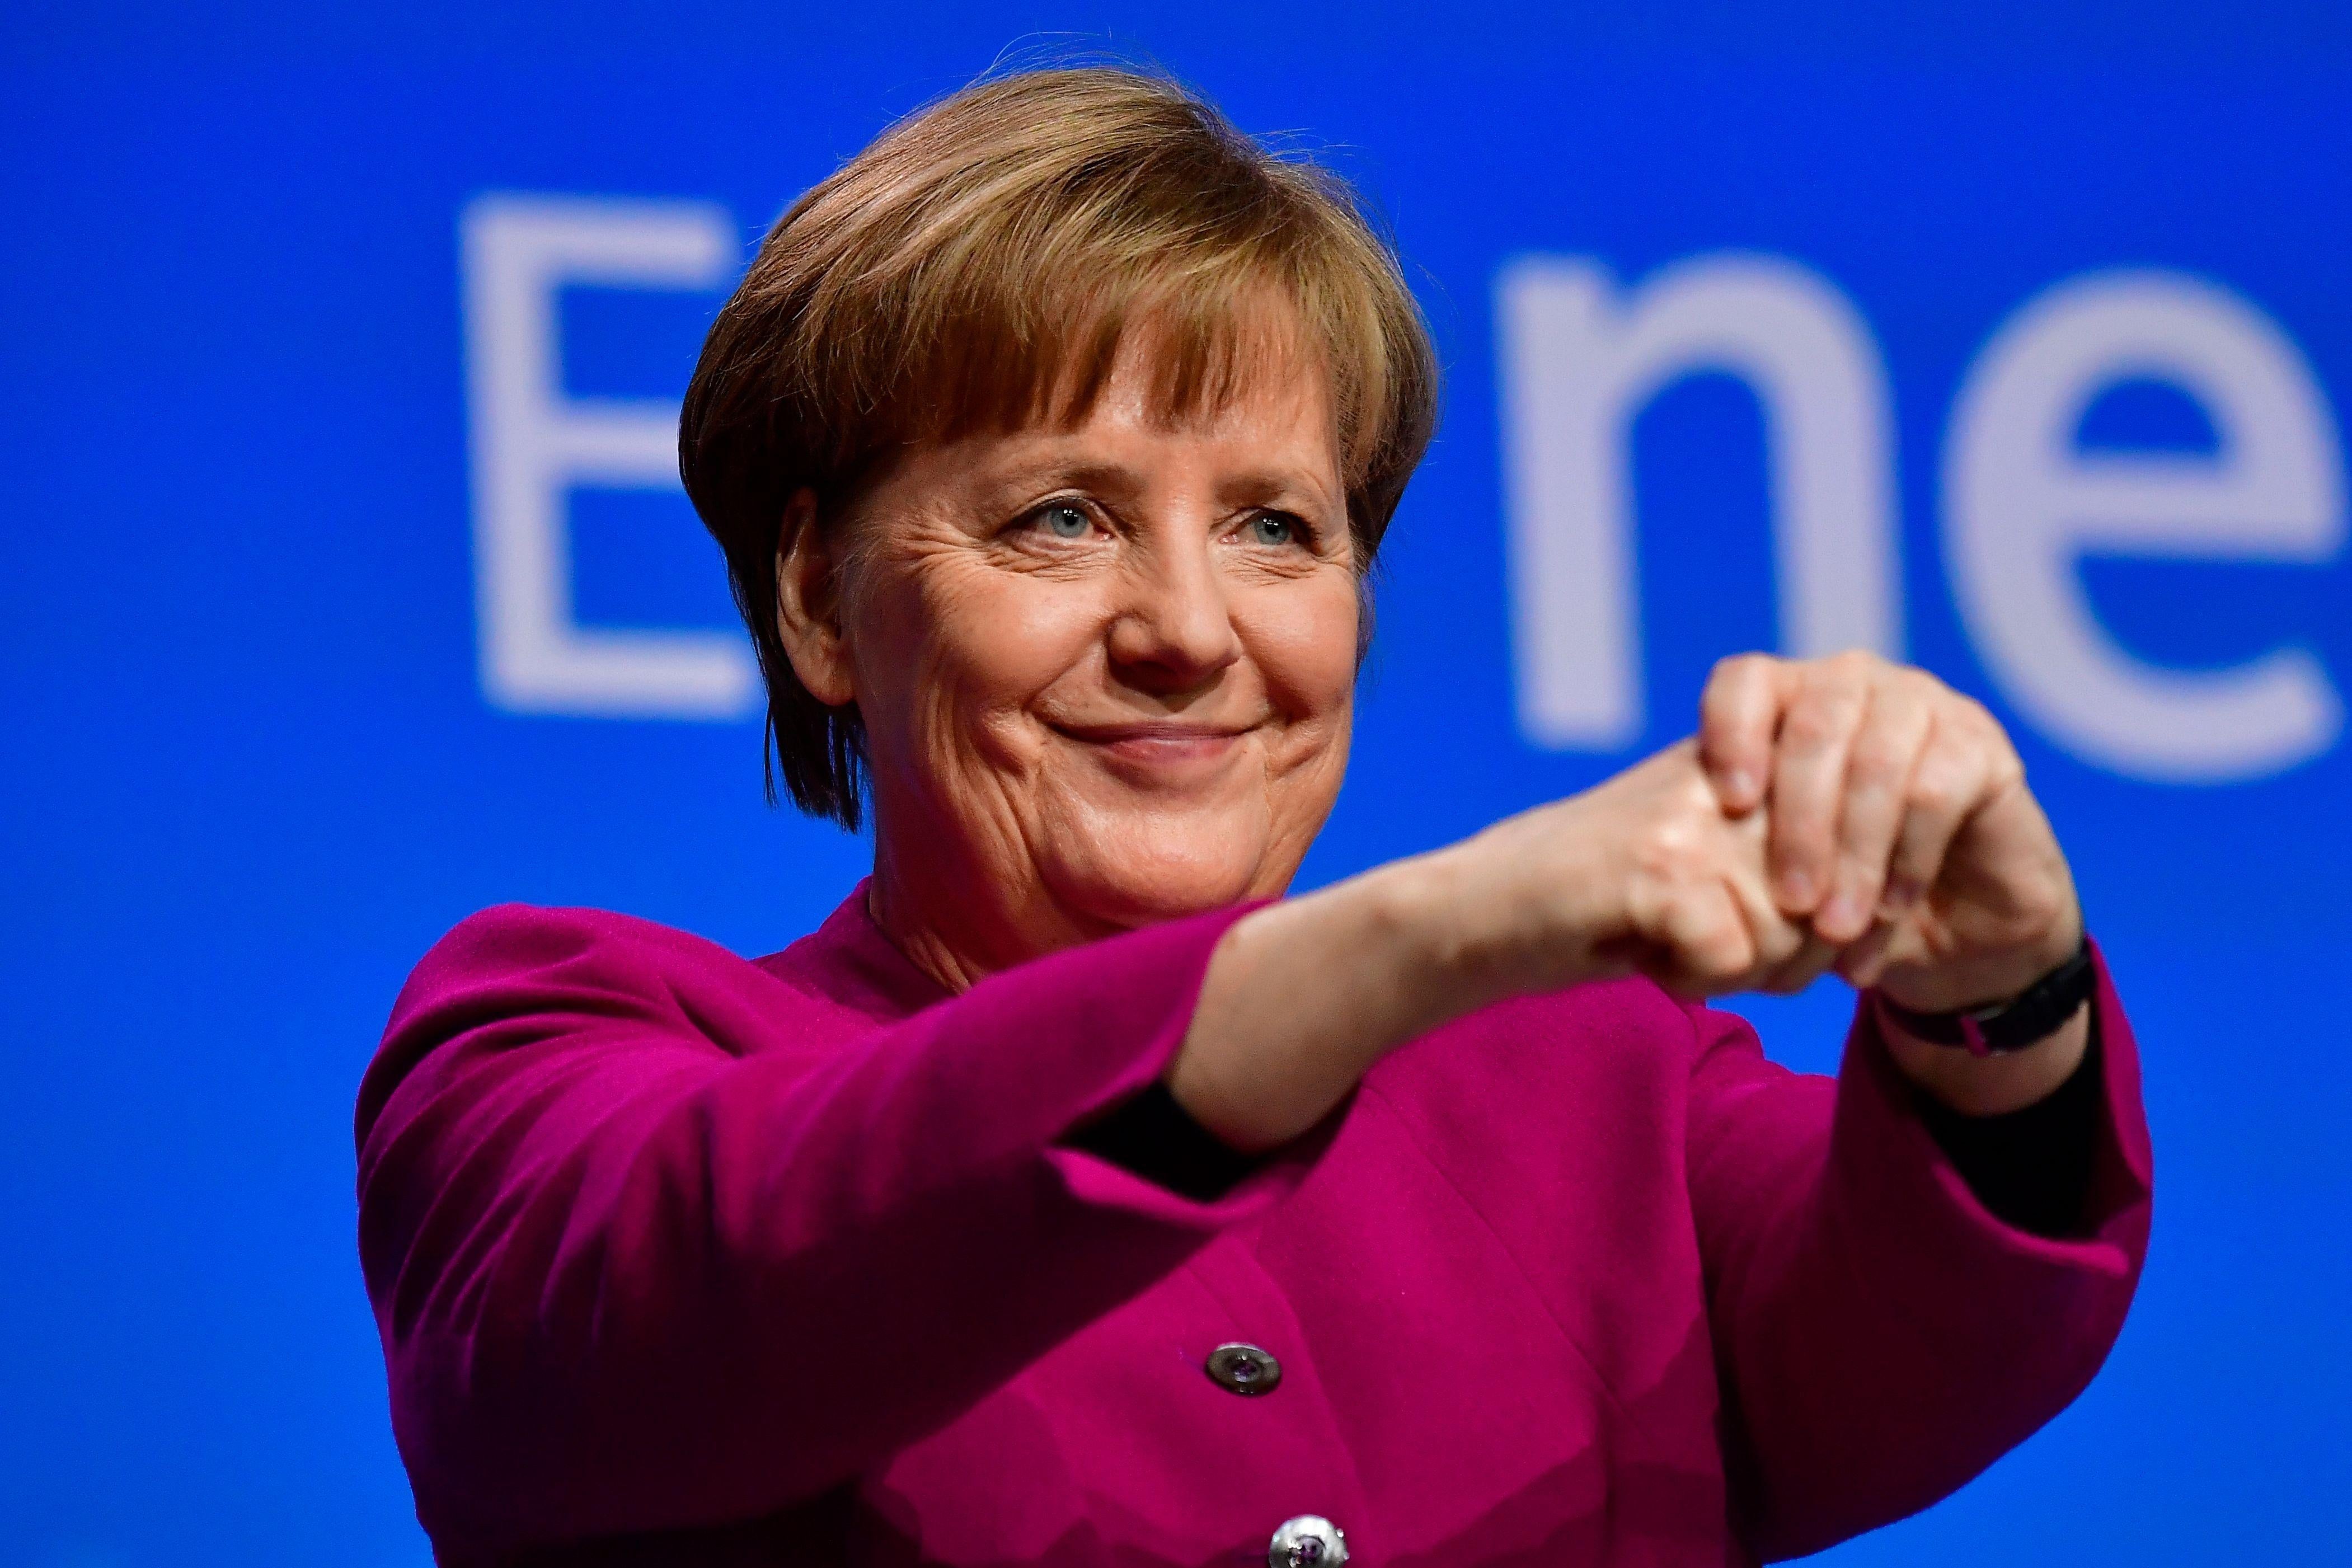 German Chancellor and leader of the conservative Christian Democratic Union (CDU) party Angela Merkel thanks delegates after giving a speech during the CDU's party congress on February 26, 2018 in Berlin.The CDU party of German Chancellor Angela Merkel is holding the congress to approve the coalition deal between the conservatives and the Social Democrats.